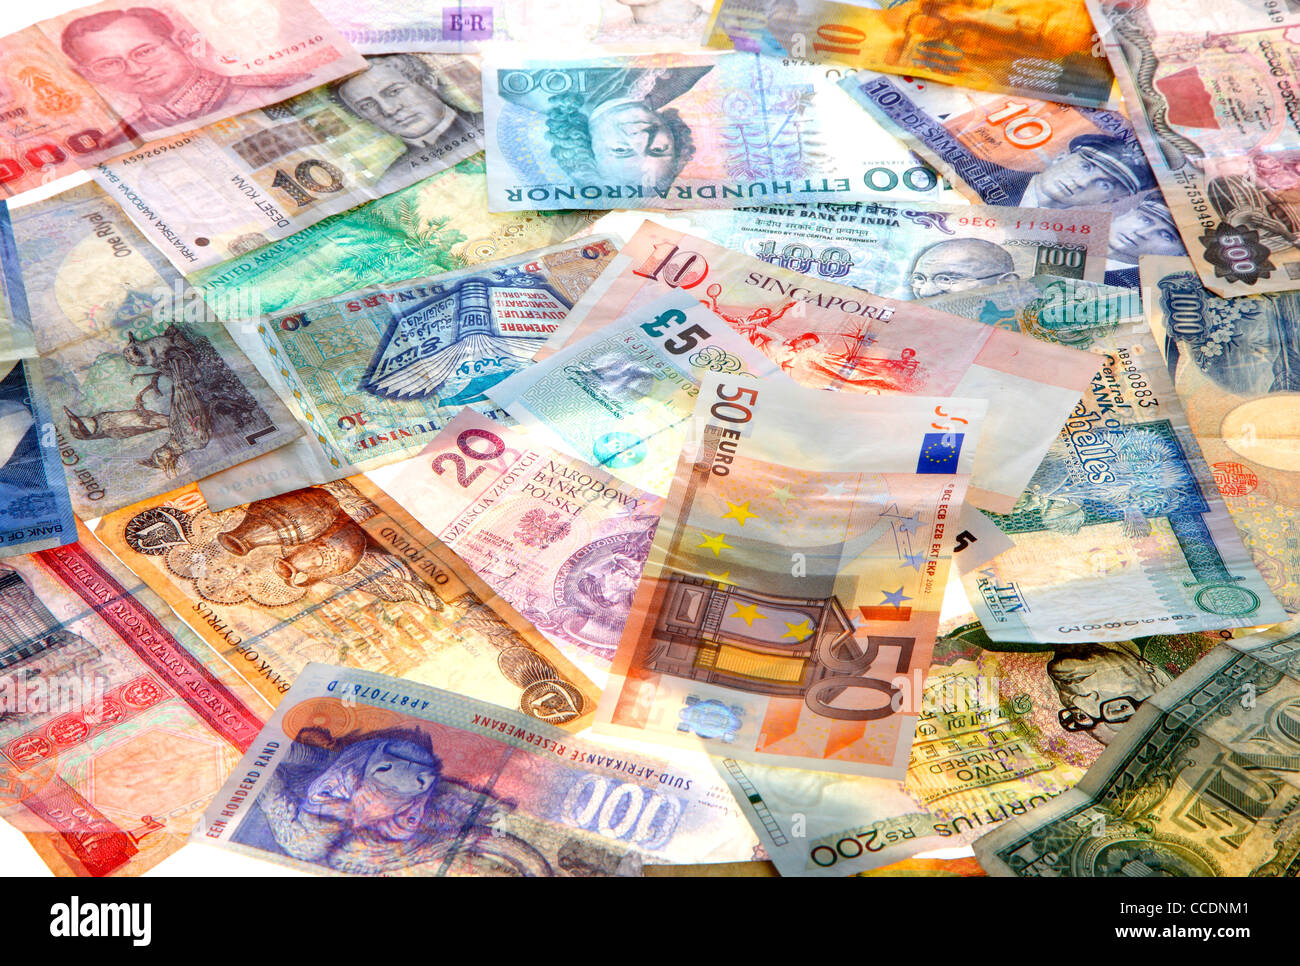 Different currencies, from different countries of the world. Bank notes, cash. - Stock Image